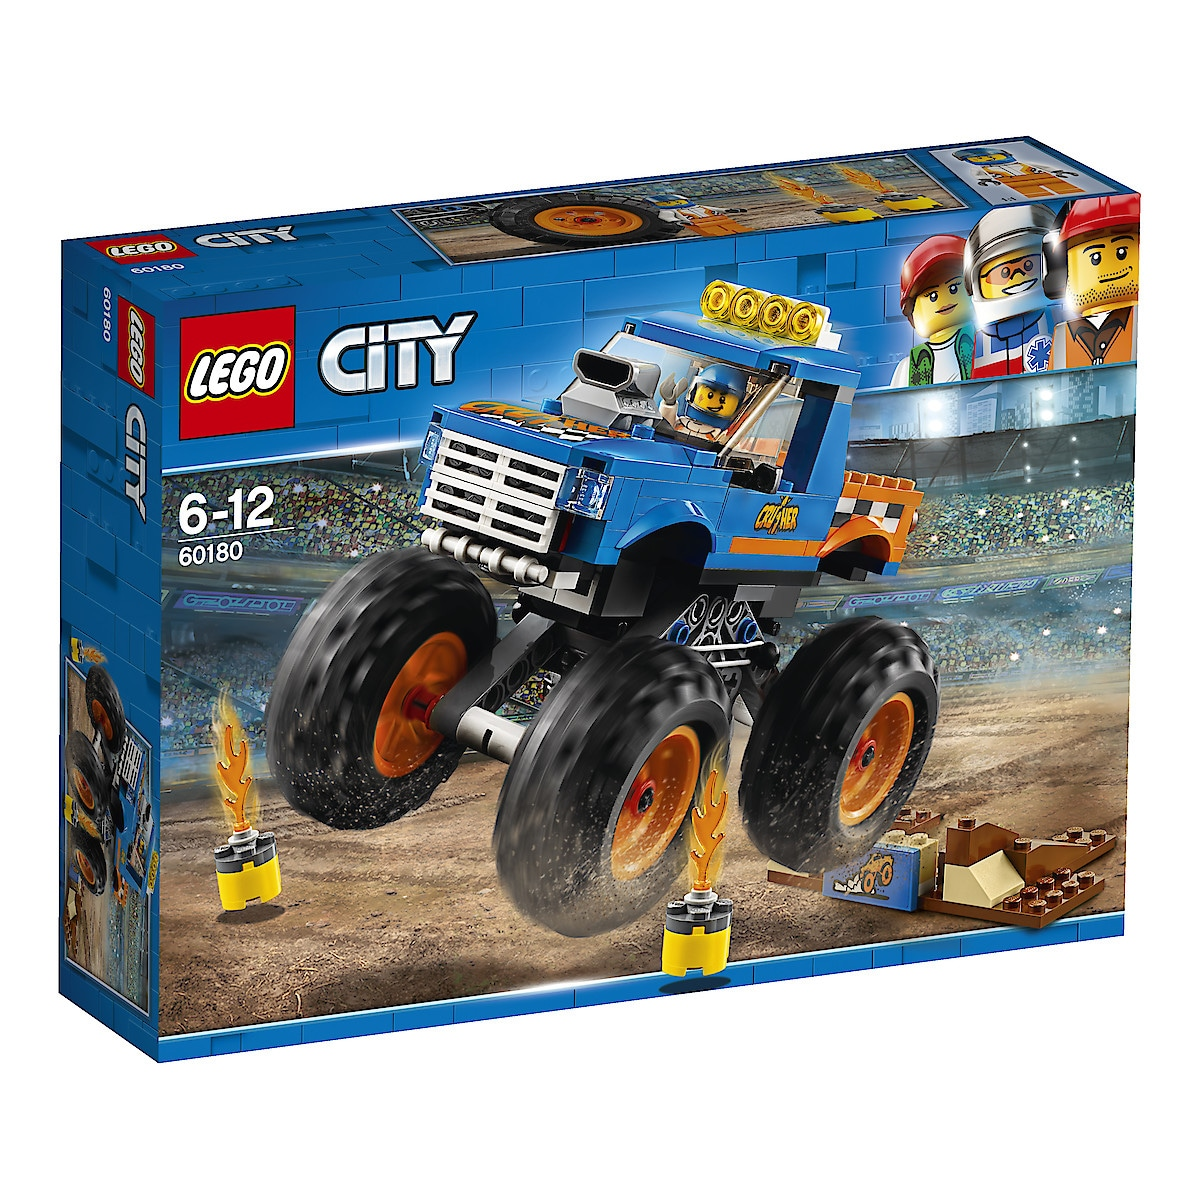 LEGO City Great Vehicles 60180, Monster Truck